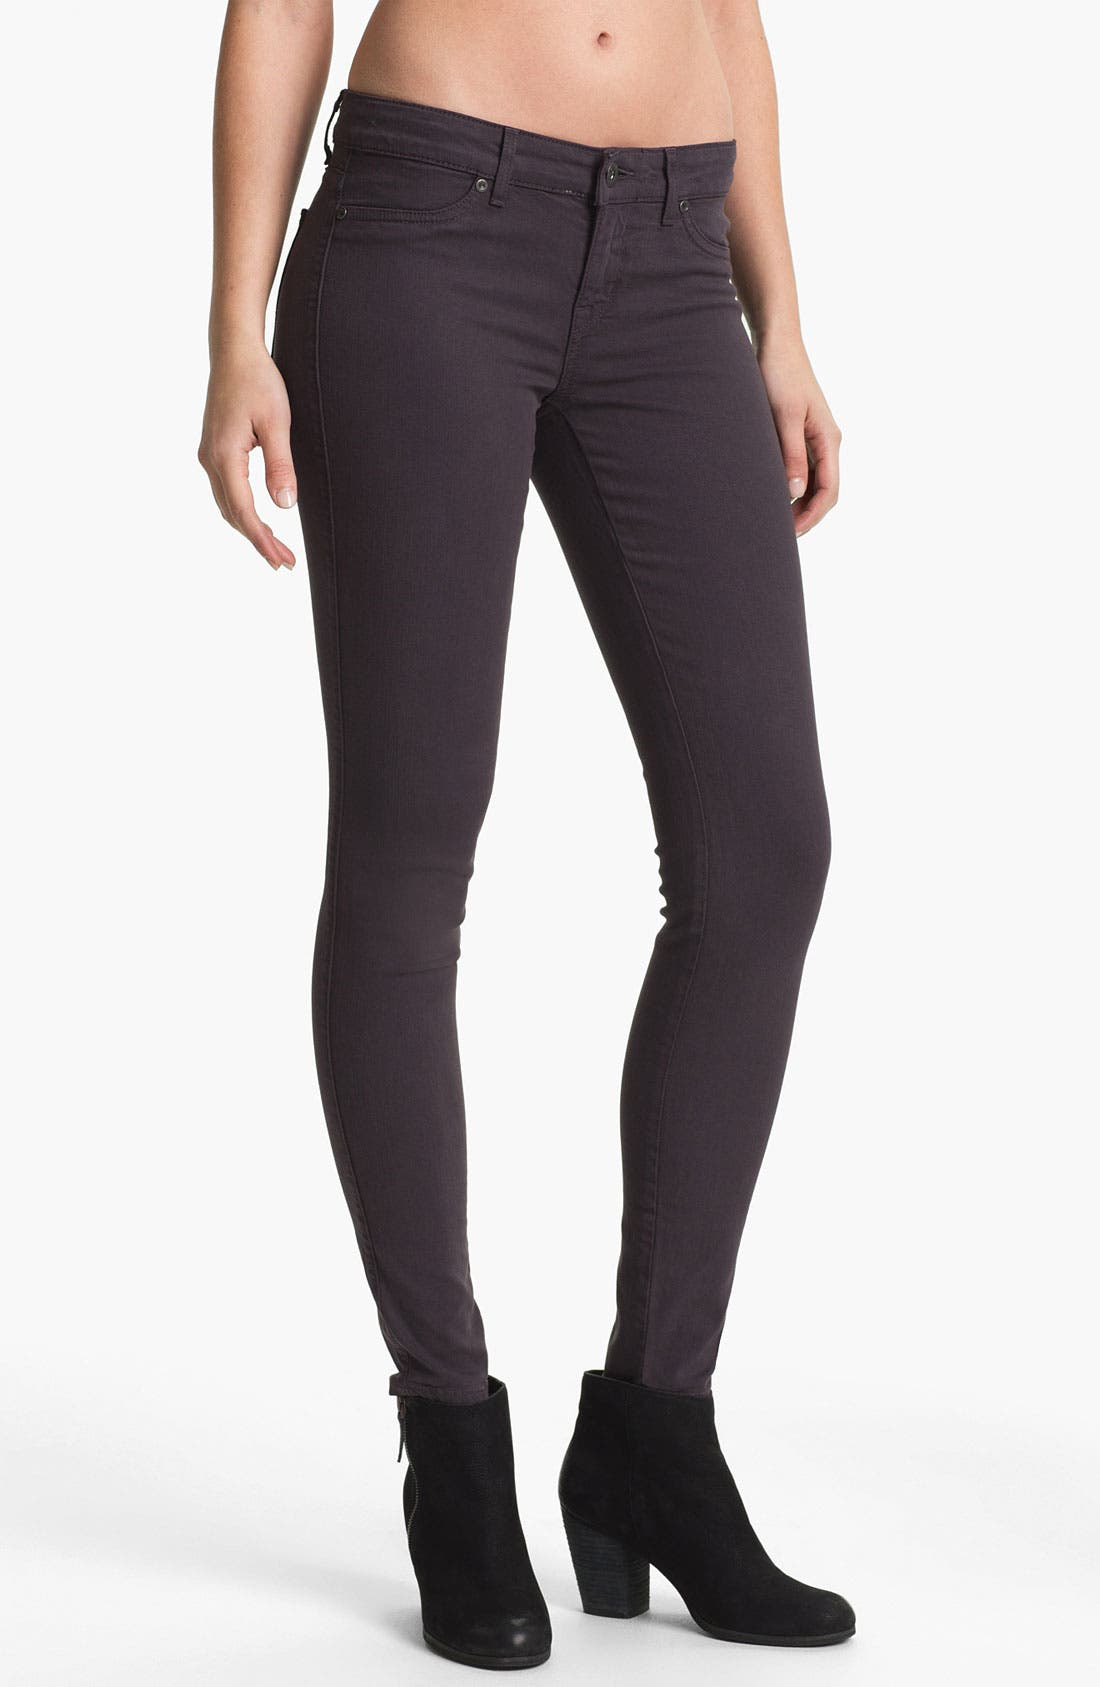 Alternate Image 1 Selected - Rich & Skinny 'Legacy' Skinny Stretch Jeans (Thumper)